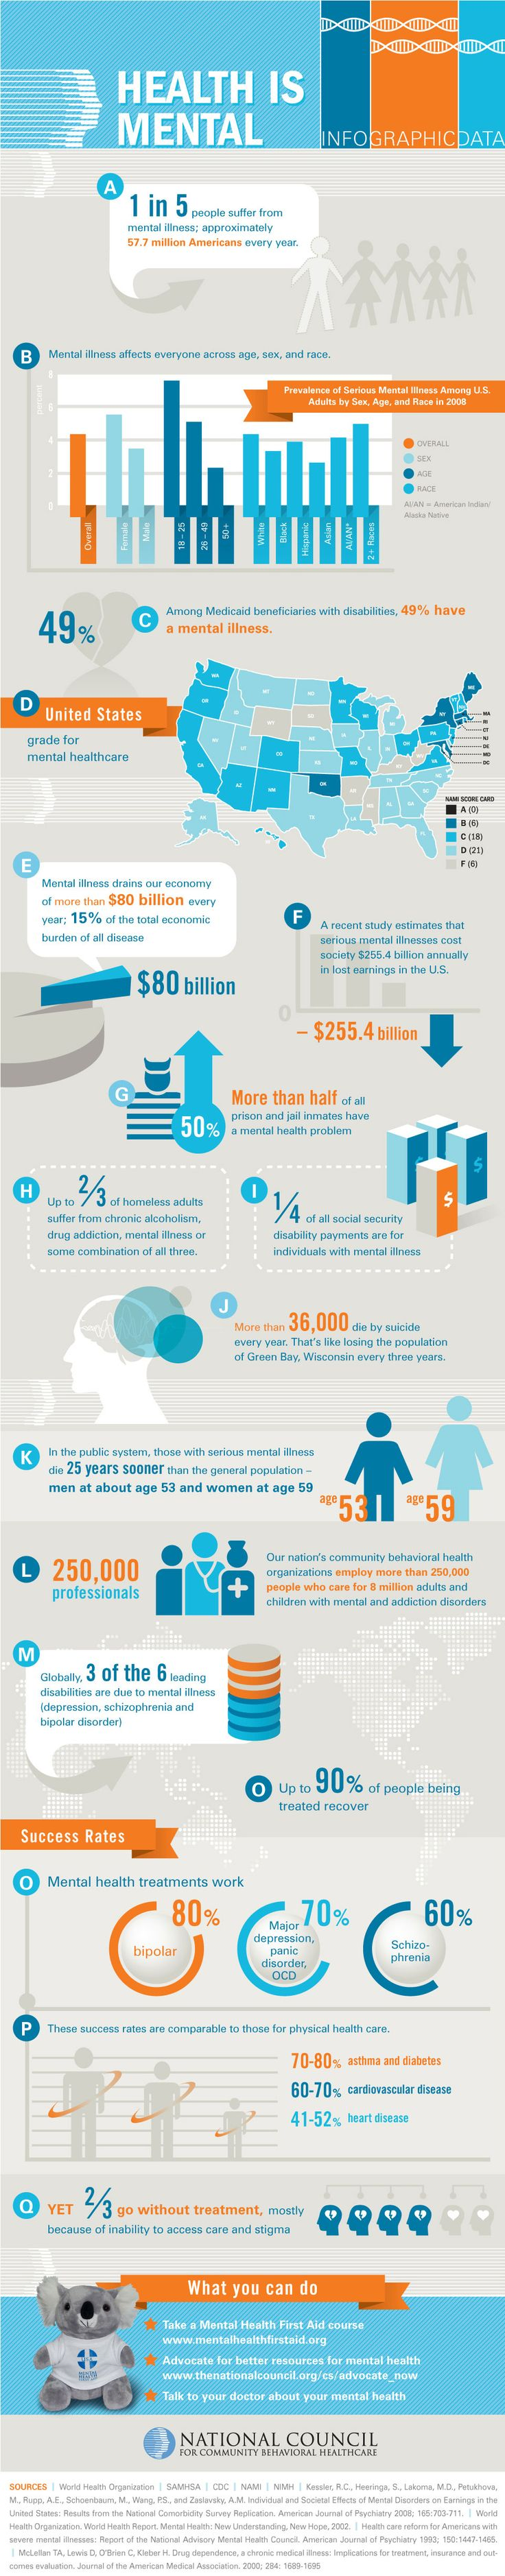 Approximately 26 % of adult Americans suffer from a mental disorder which is diagnosable within any given year. This infographic shares the stats on mental health disorders in the United States.